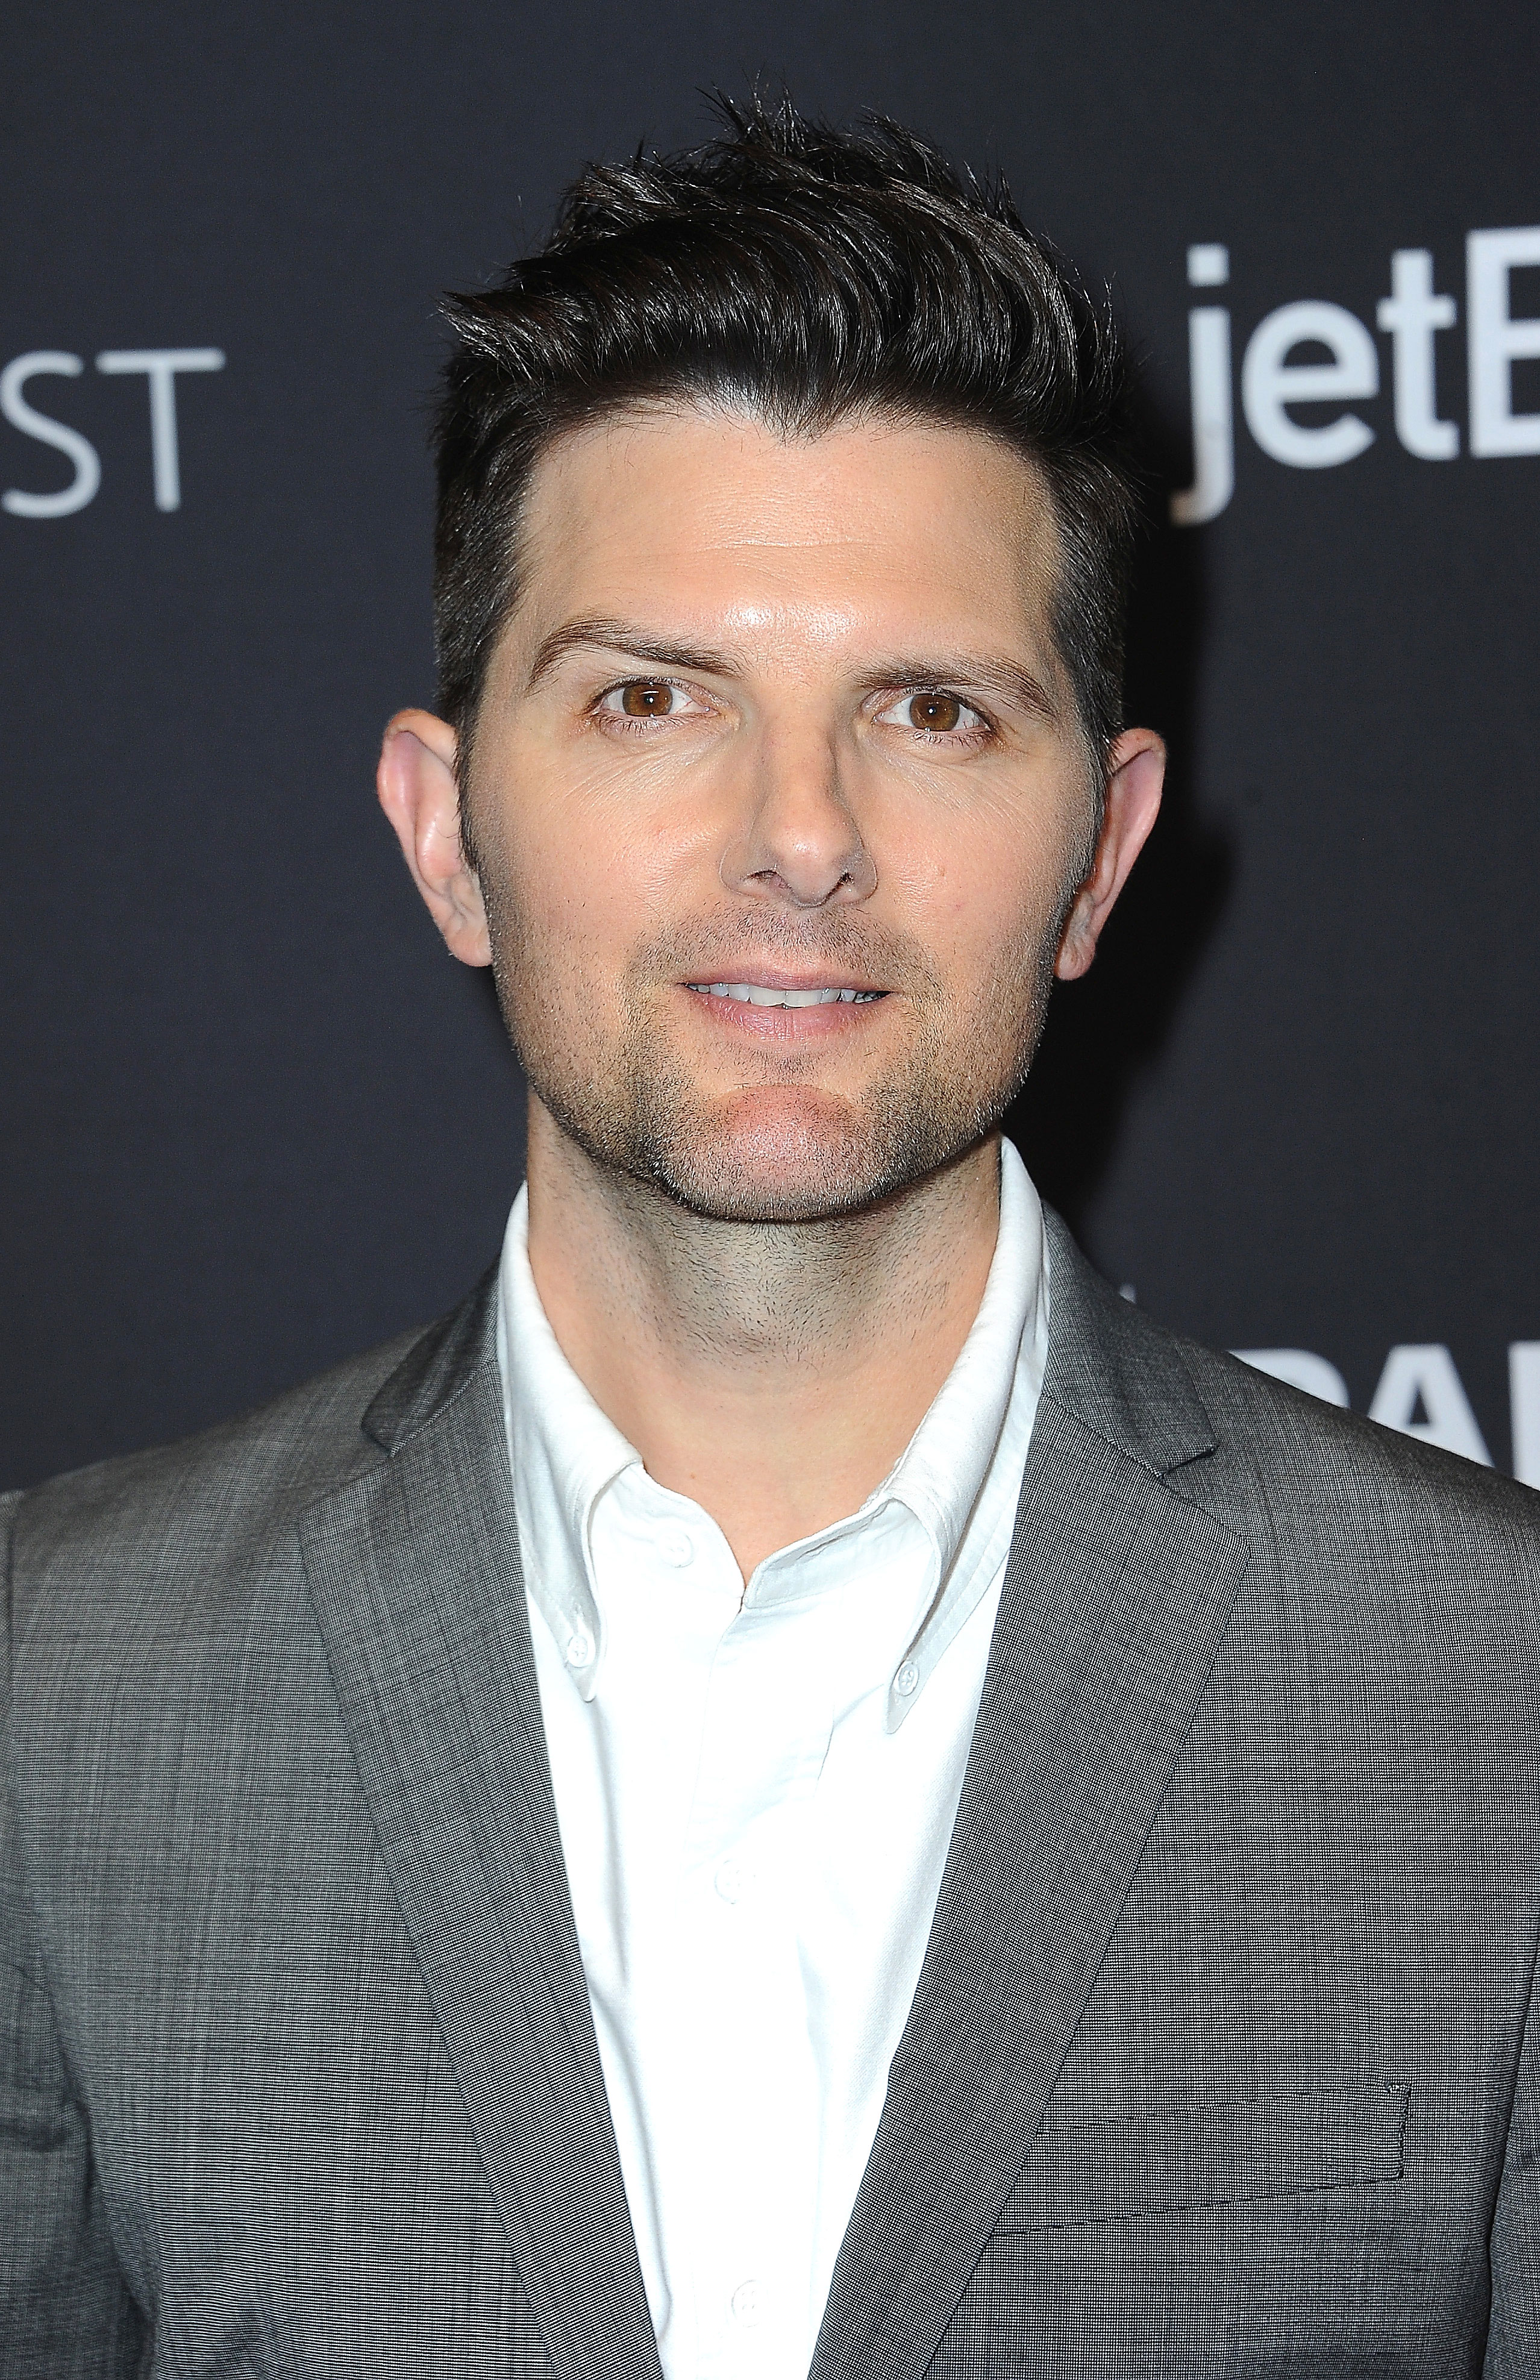 """Every Celeb Appearing on the New 'Twilight Zone' Adam Scott - The series' second episode, """"Nightmare at 30,000 Feet,"""" is based on the 1963 episode, """"Nightmare at 20,000 Feet,"""" as well as the 1983 movie of the same name. Adam Scott portrays Justin Sanderson, a stressed out passenger who makes a disturbing discovery mid-flight."""